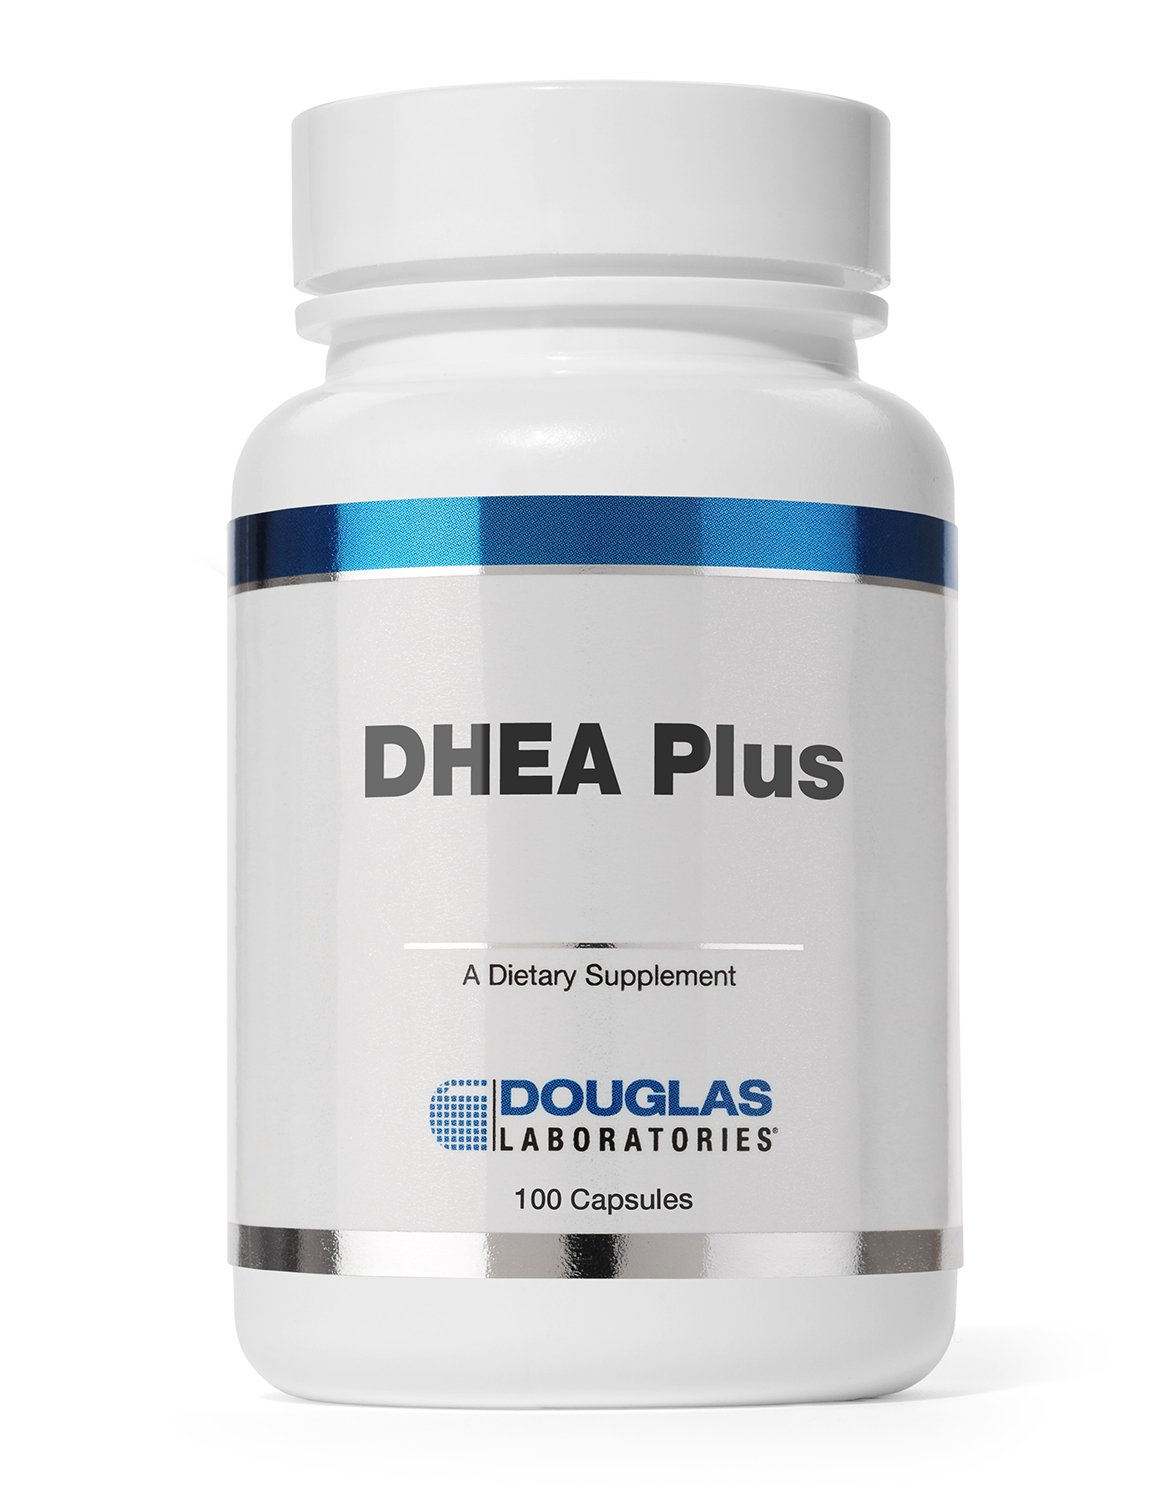 Douglas Laboratories – DHEA Plus – 25 mg. DHEA Plus Pregnenolone Supports Immunity, Brain, Bones, Metabolism and Lean Body Mass* – 100 Capsules